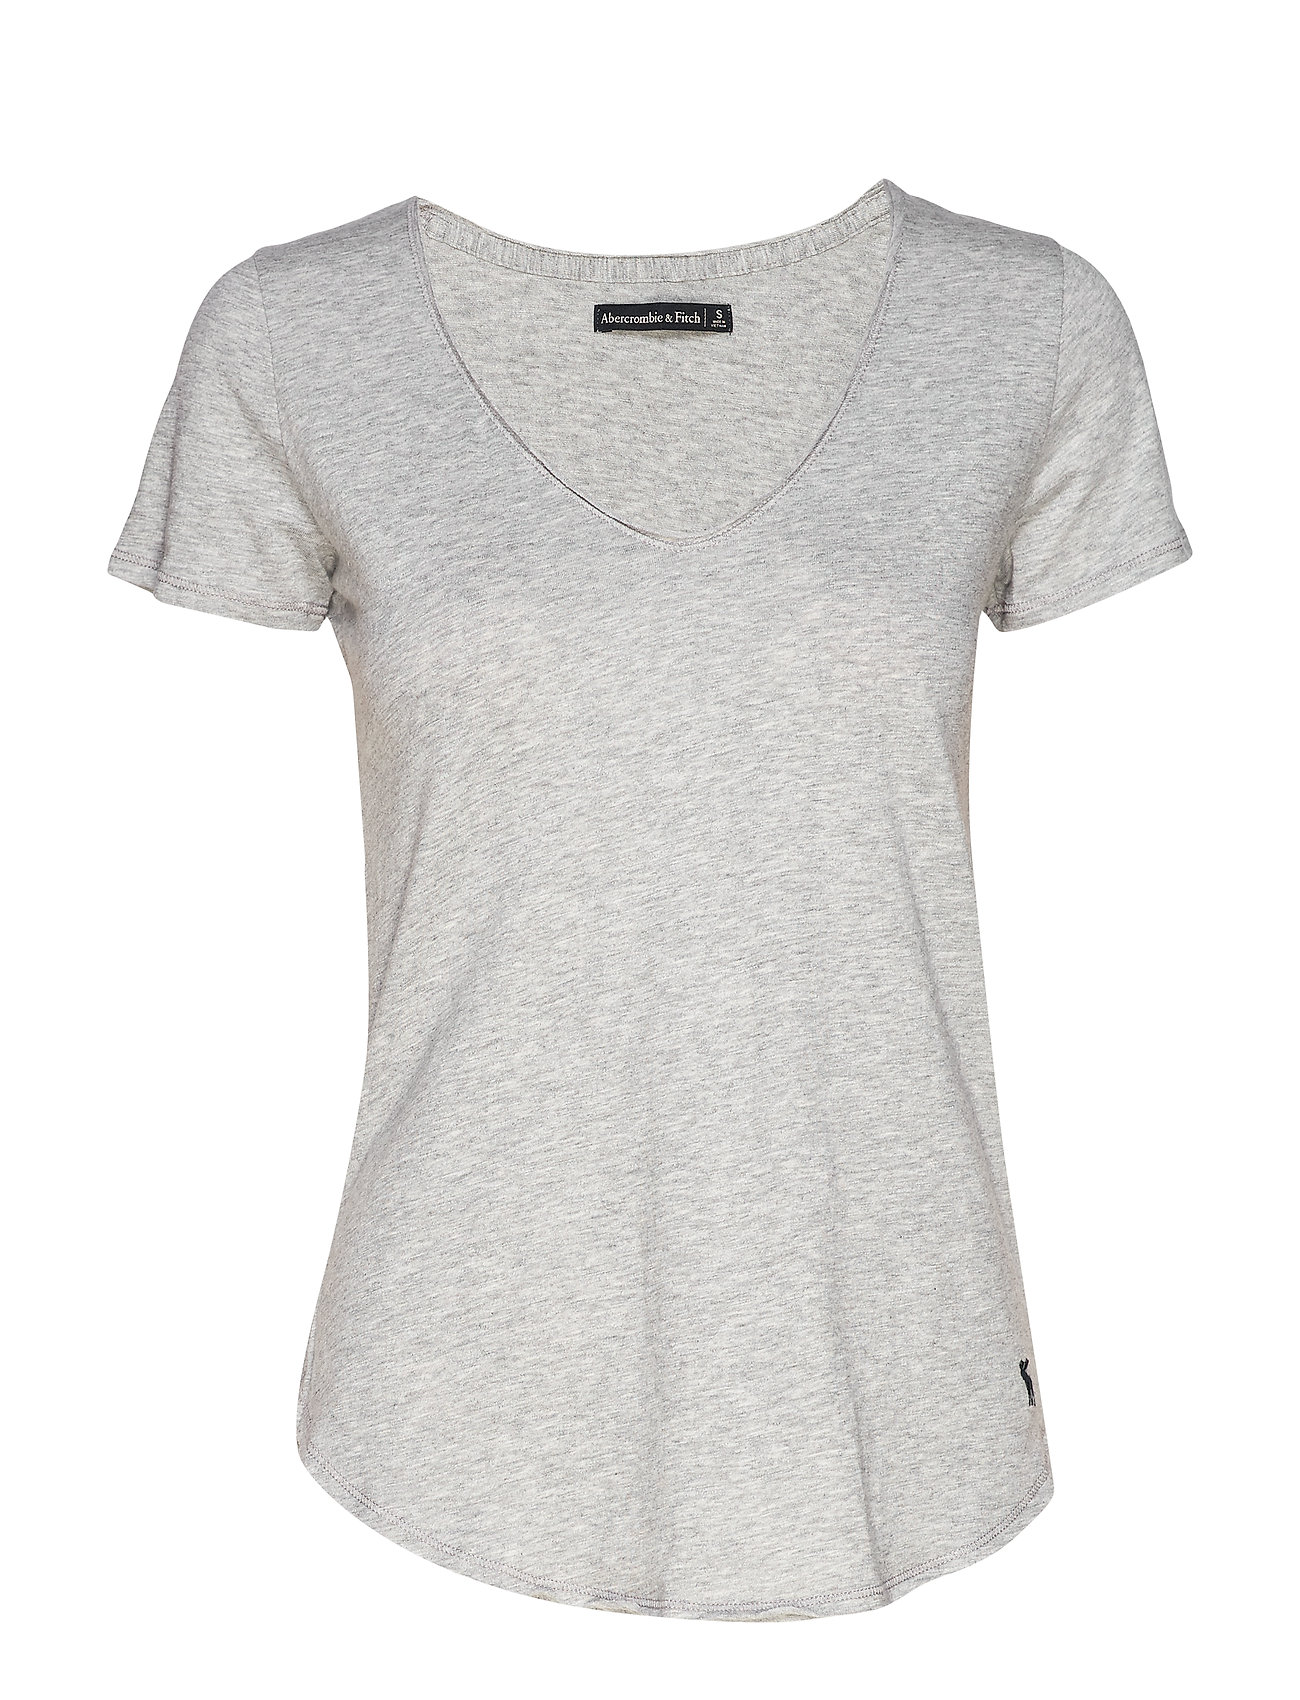 Abercrombie & Fitch Tee - LIGHT GREY SD/TEXTURE